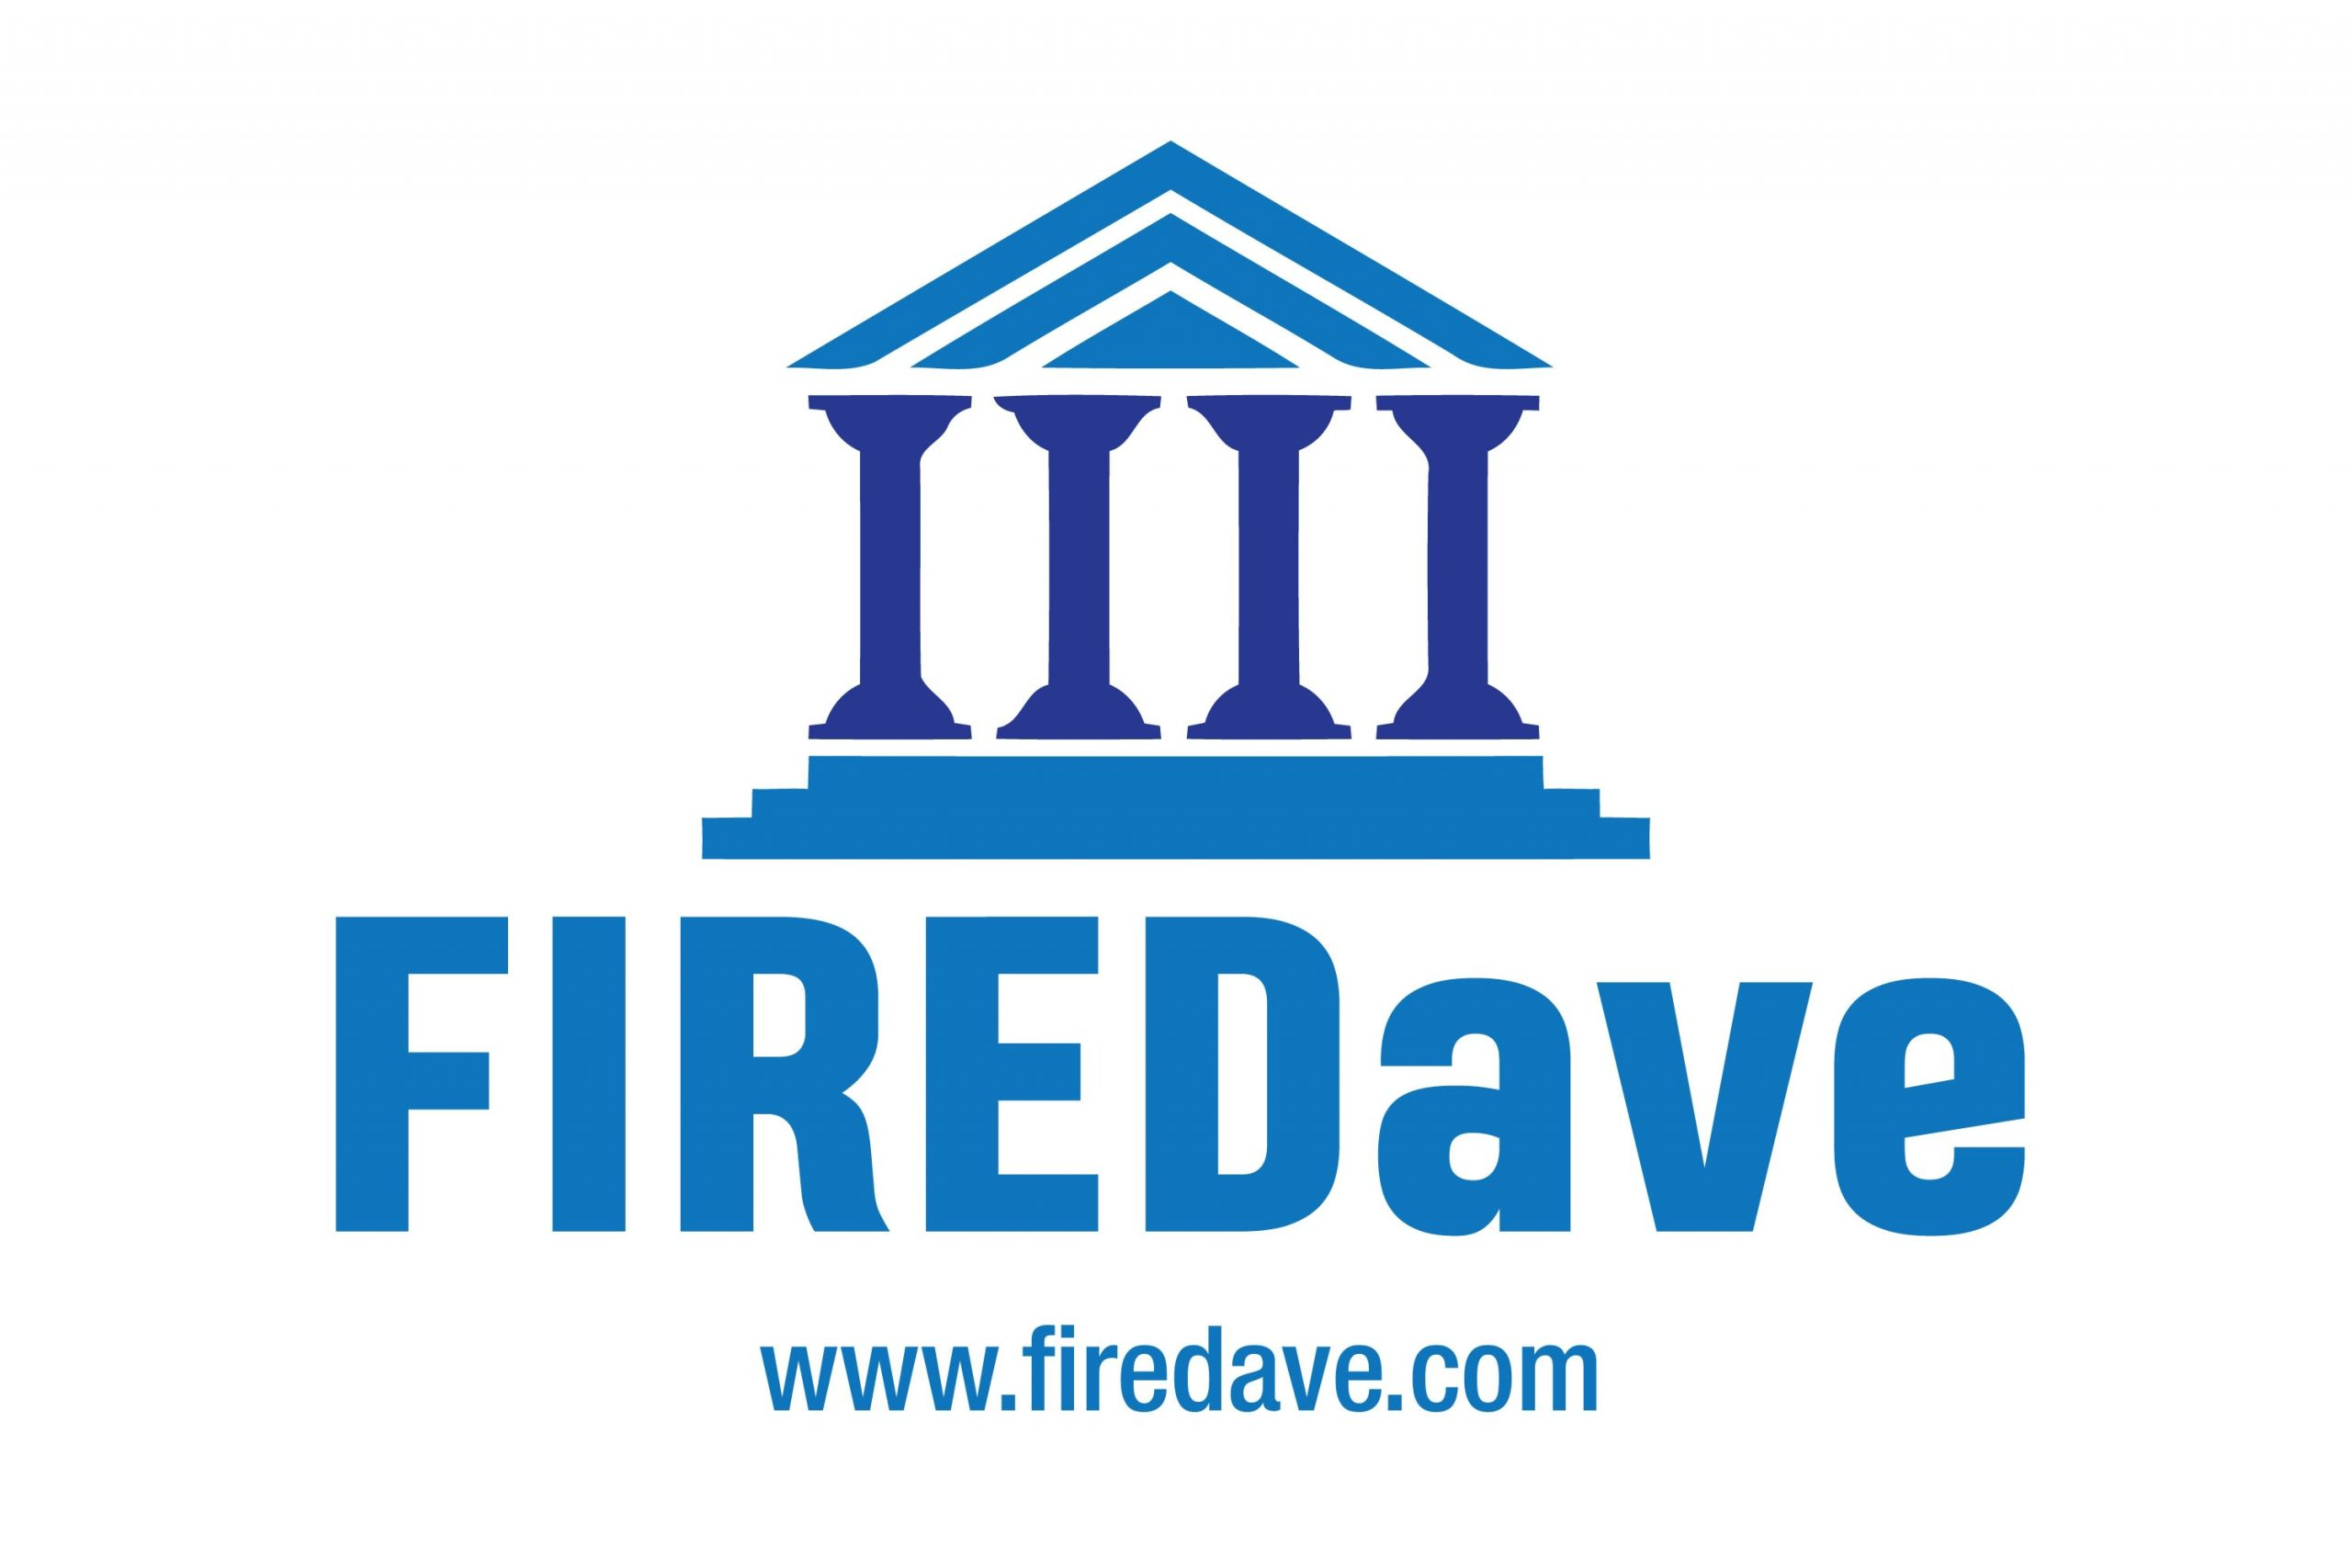 FIRE Dave